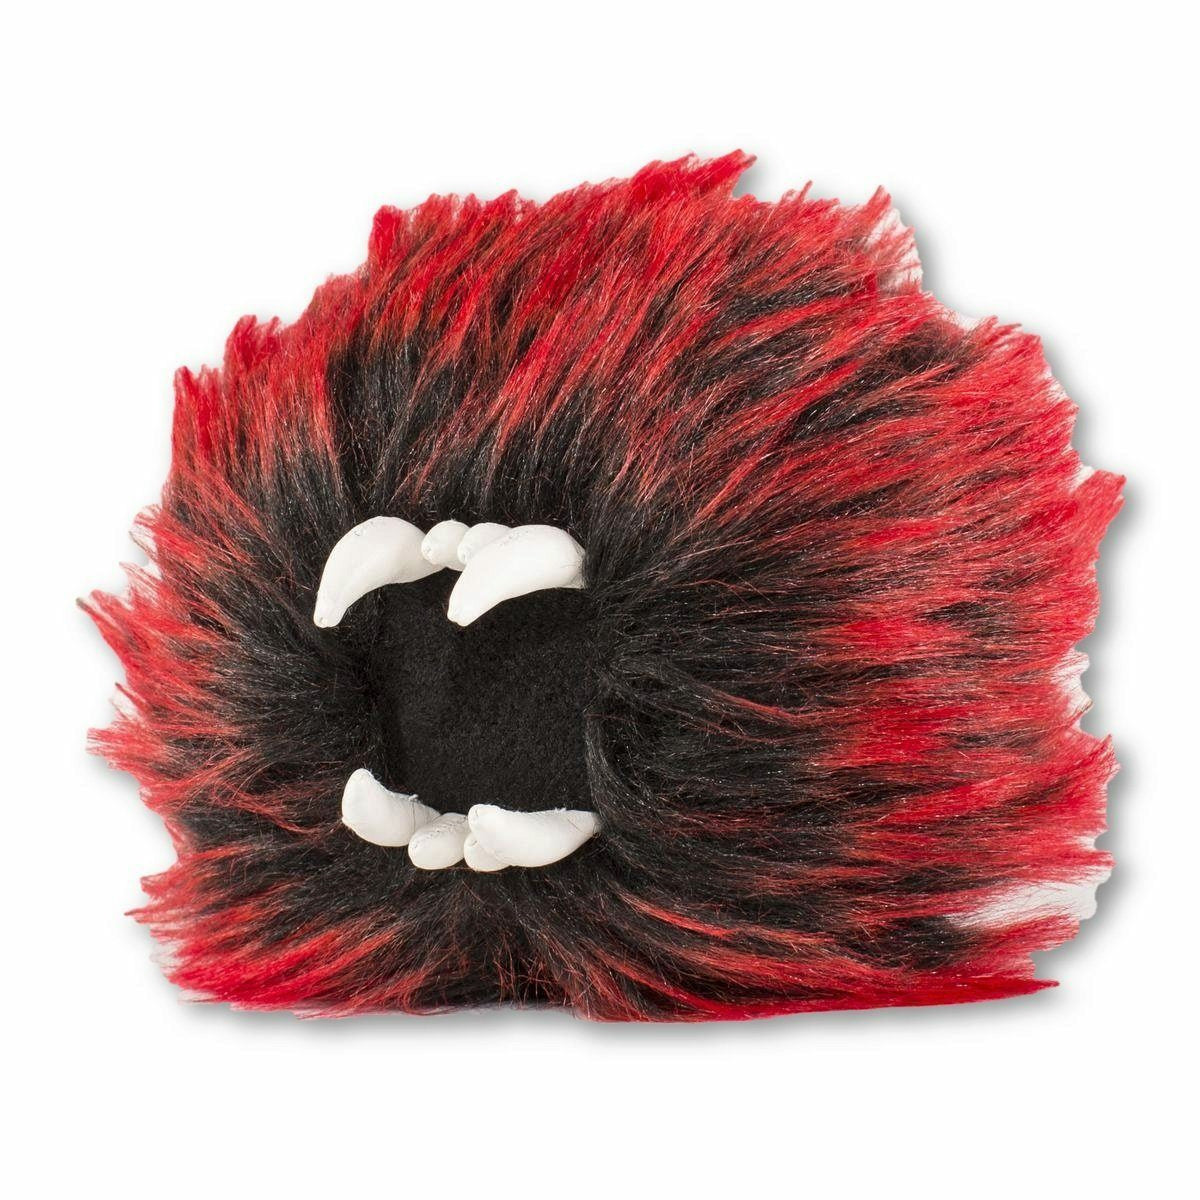 Star Trek: Mirror Universe Tribble Plush Toy